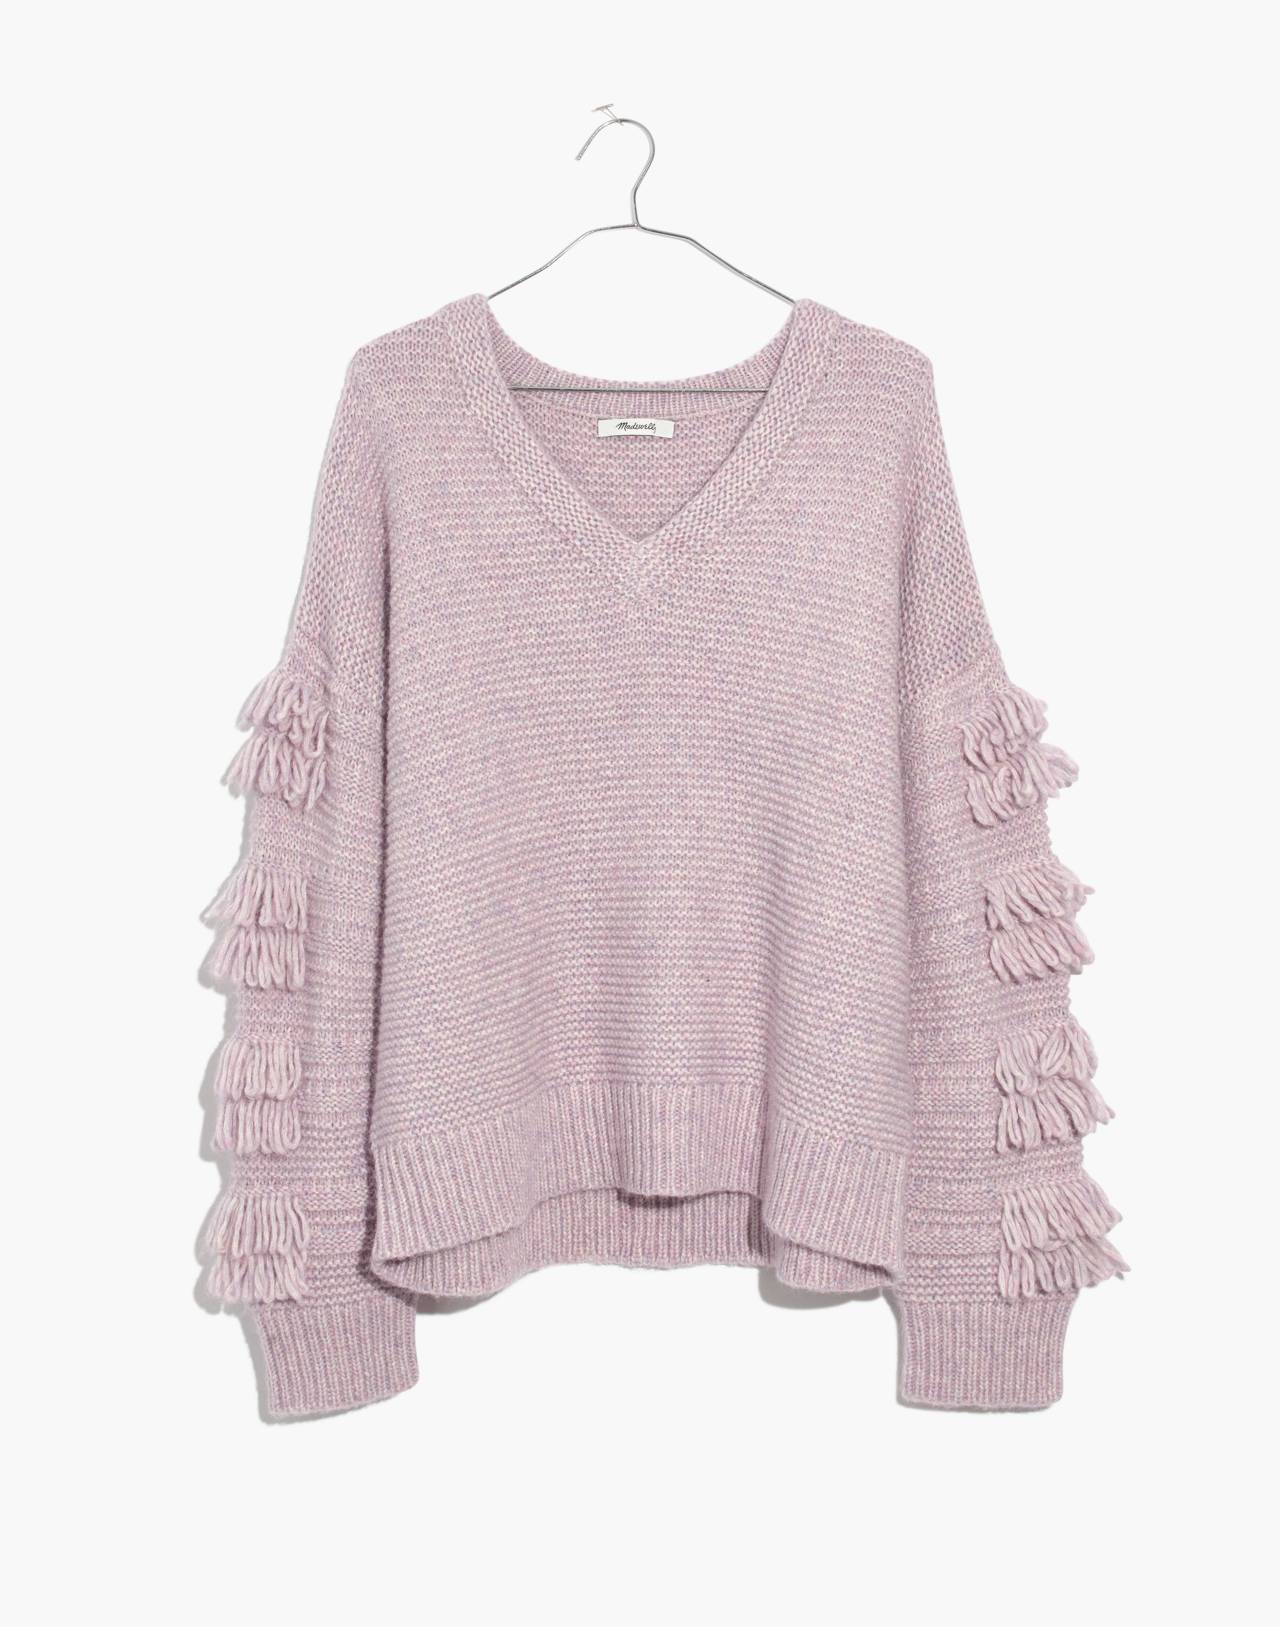 Fringe-Sleeve Pullover Sweater in heather periwinkle image 4